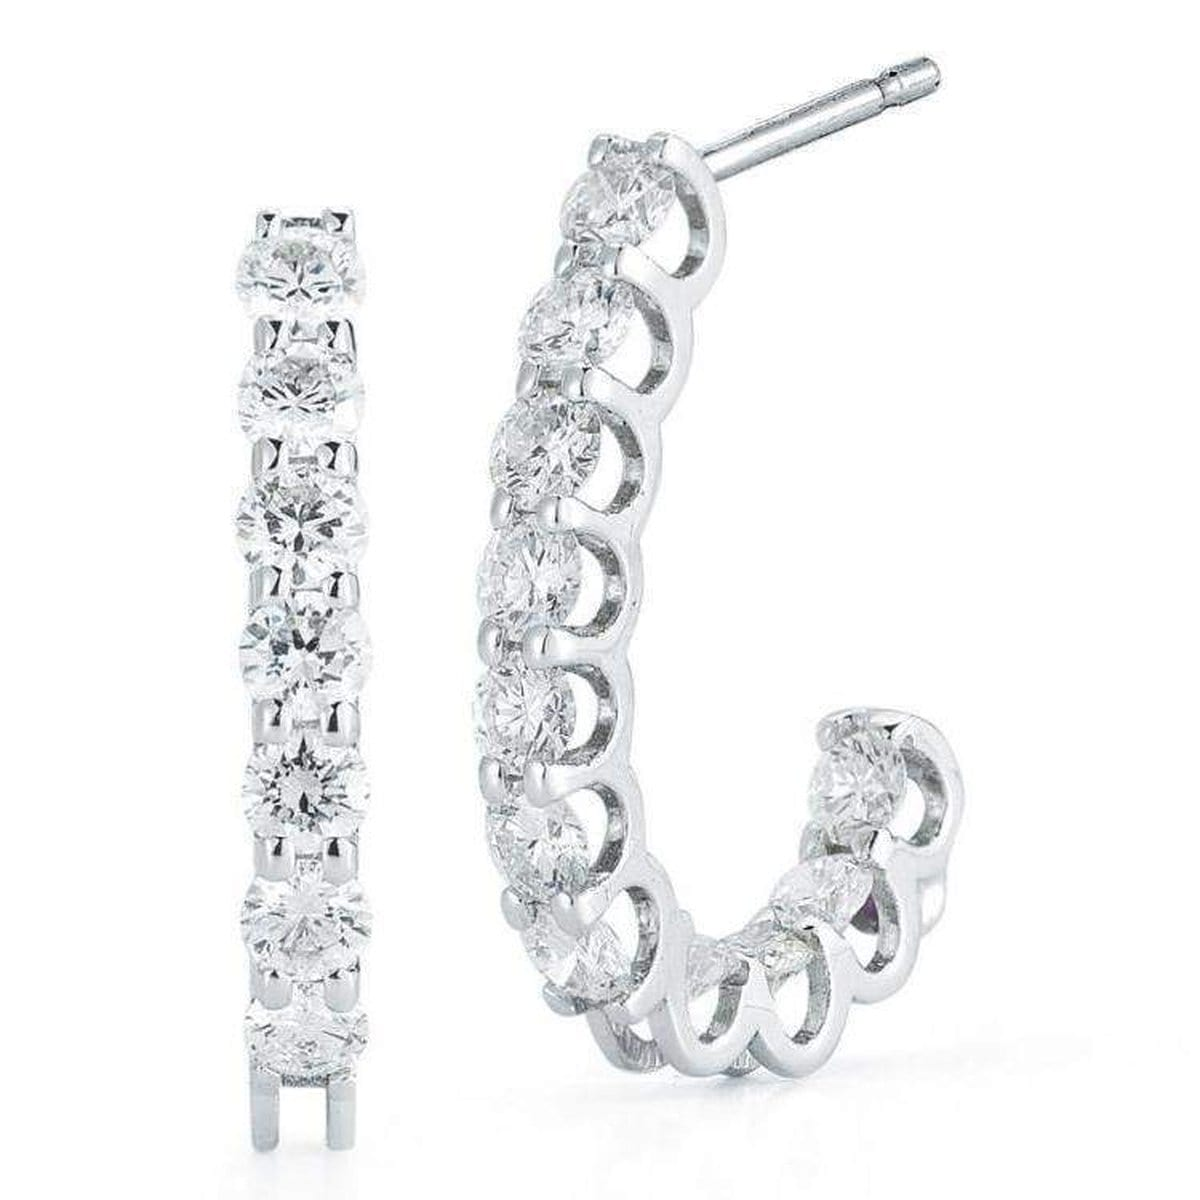 18k White Gold & Diamond Extra Small J Shape Earrings - 000957AWERX0-Roberto Coin-Renee Taylor Gallery